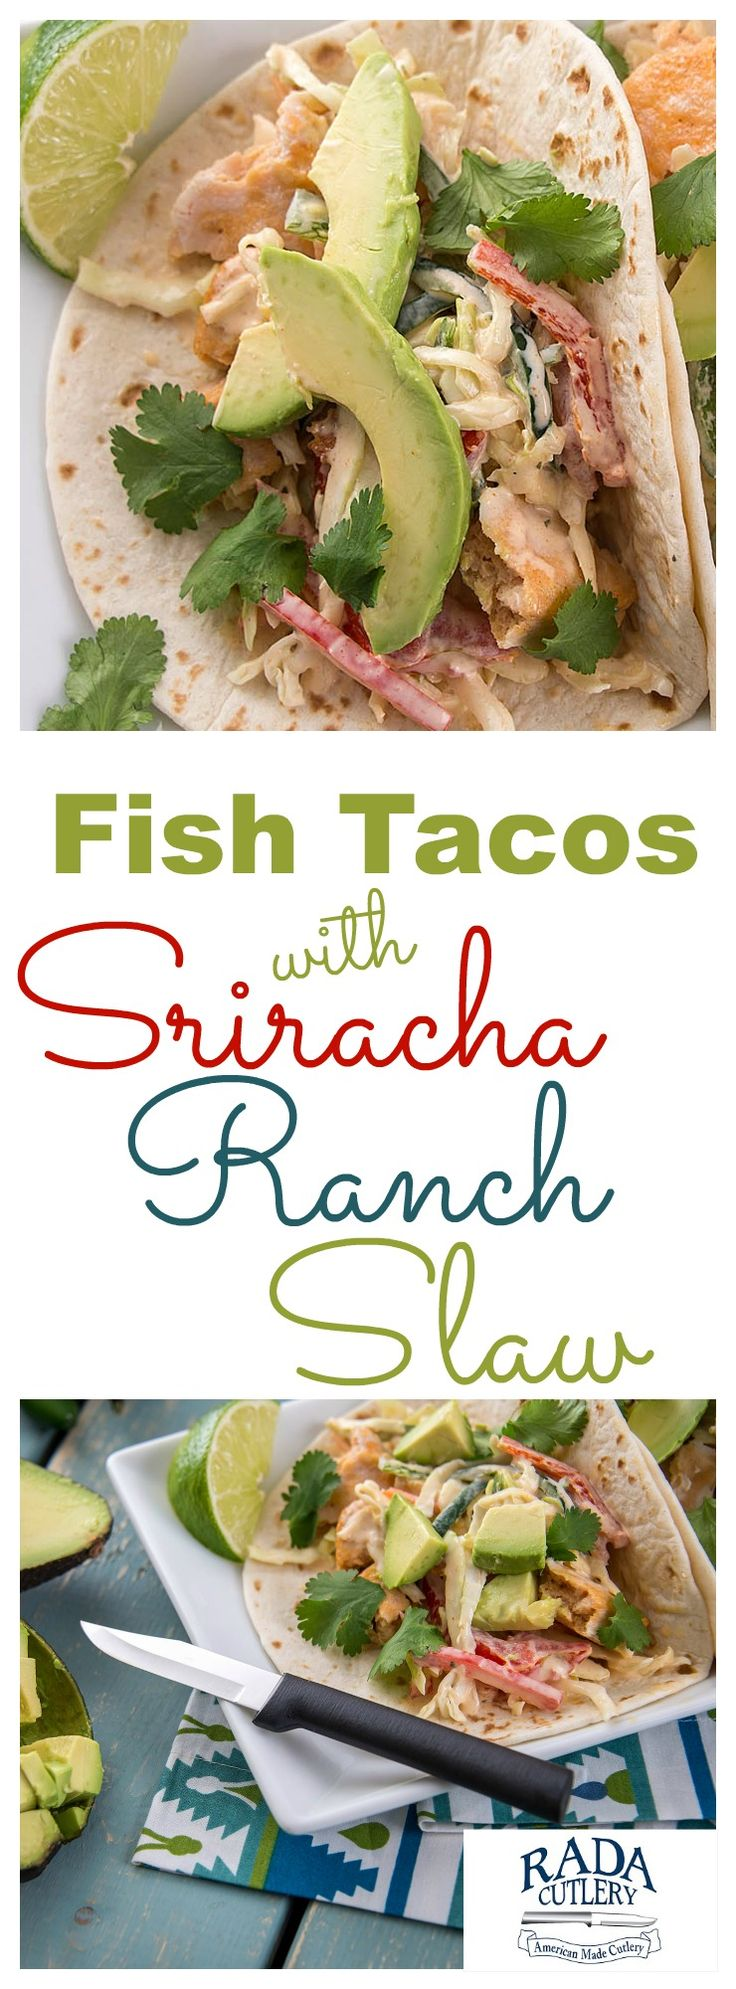 17 best ideas about best fish taco recipe on pinterest for Slaw recipe for fish tacos